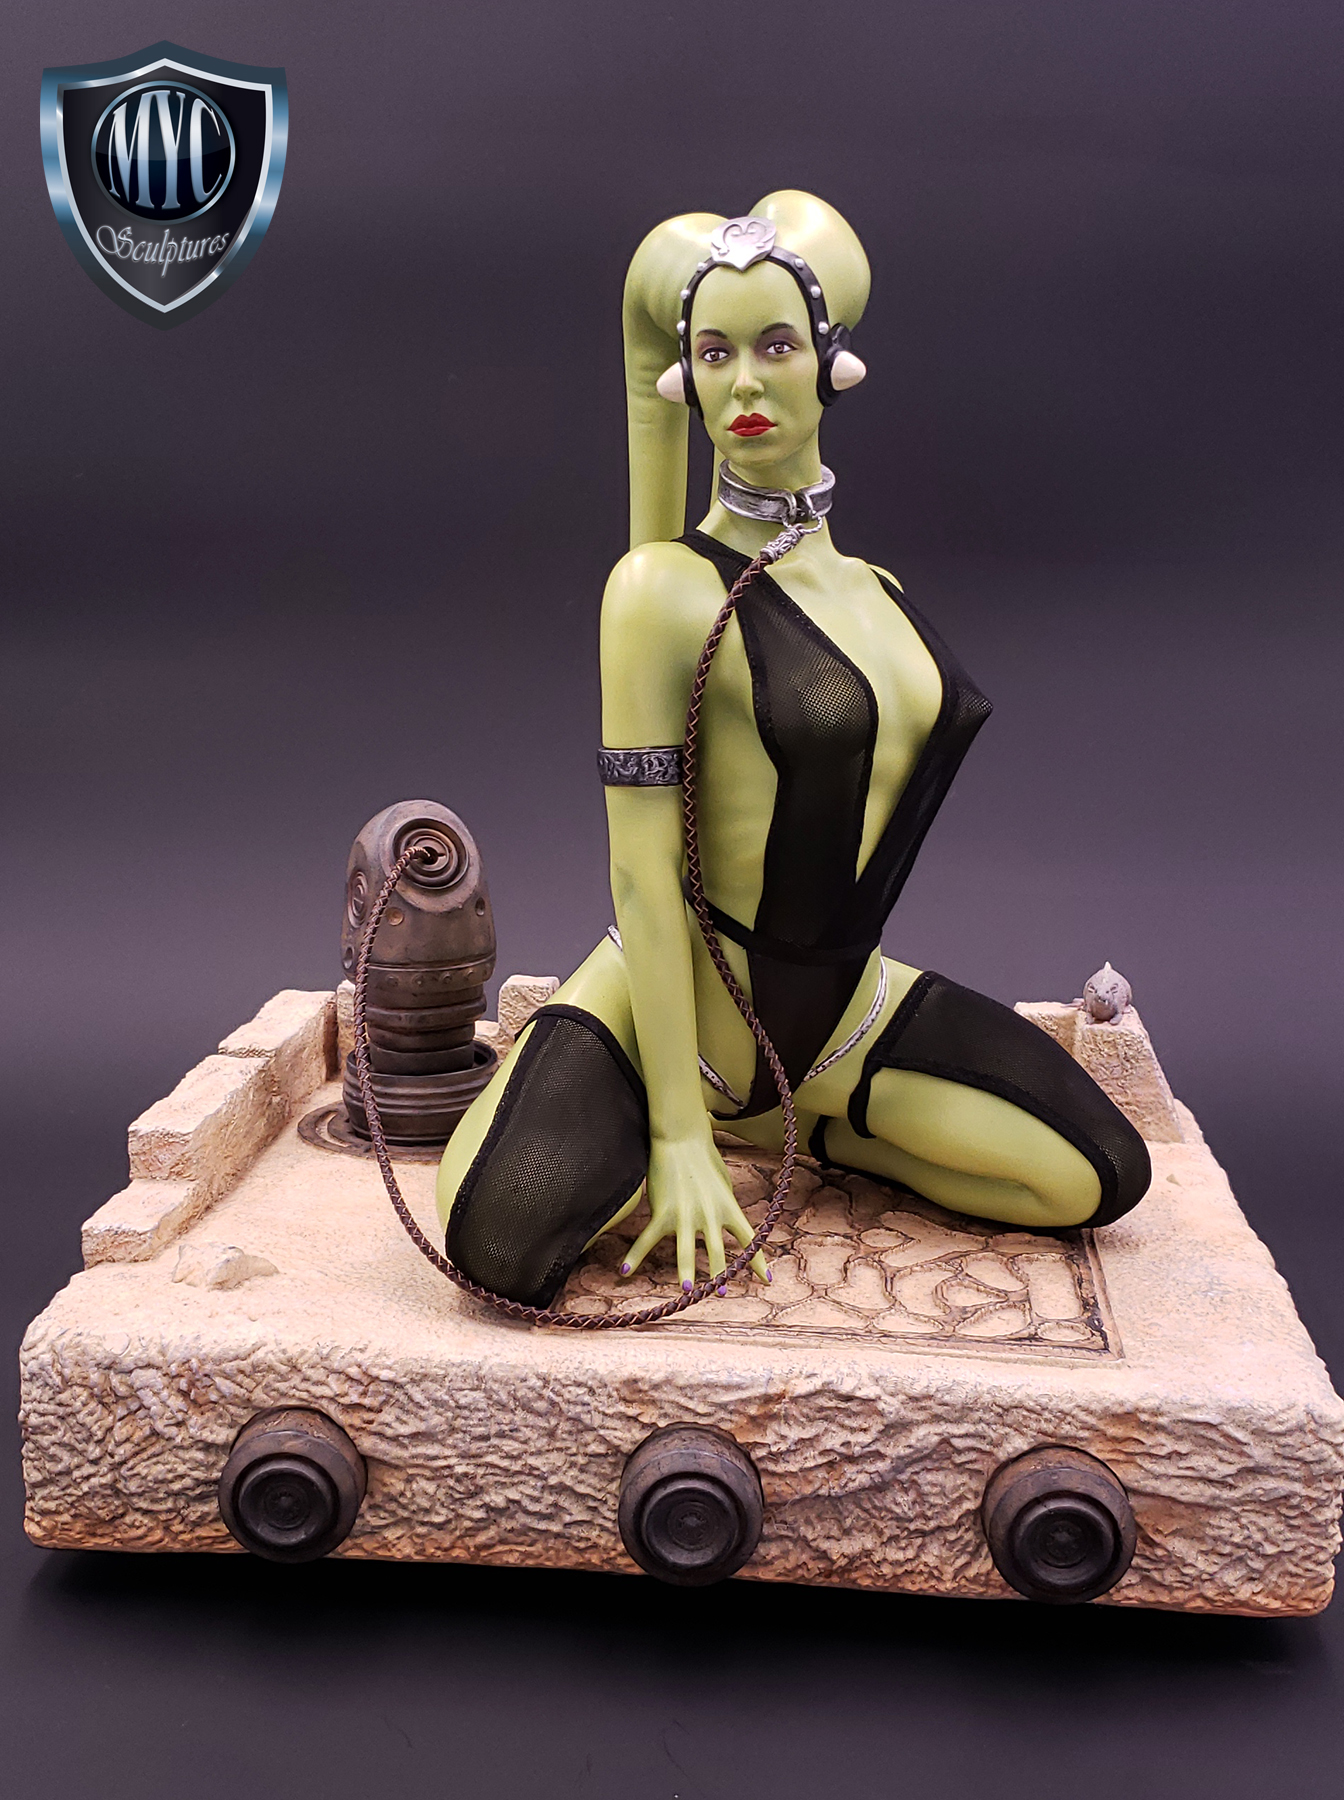 Oola_Star_Wars_Statue_01